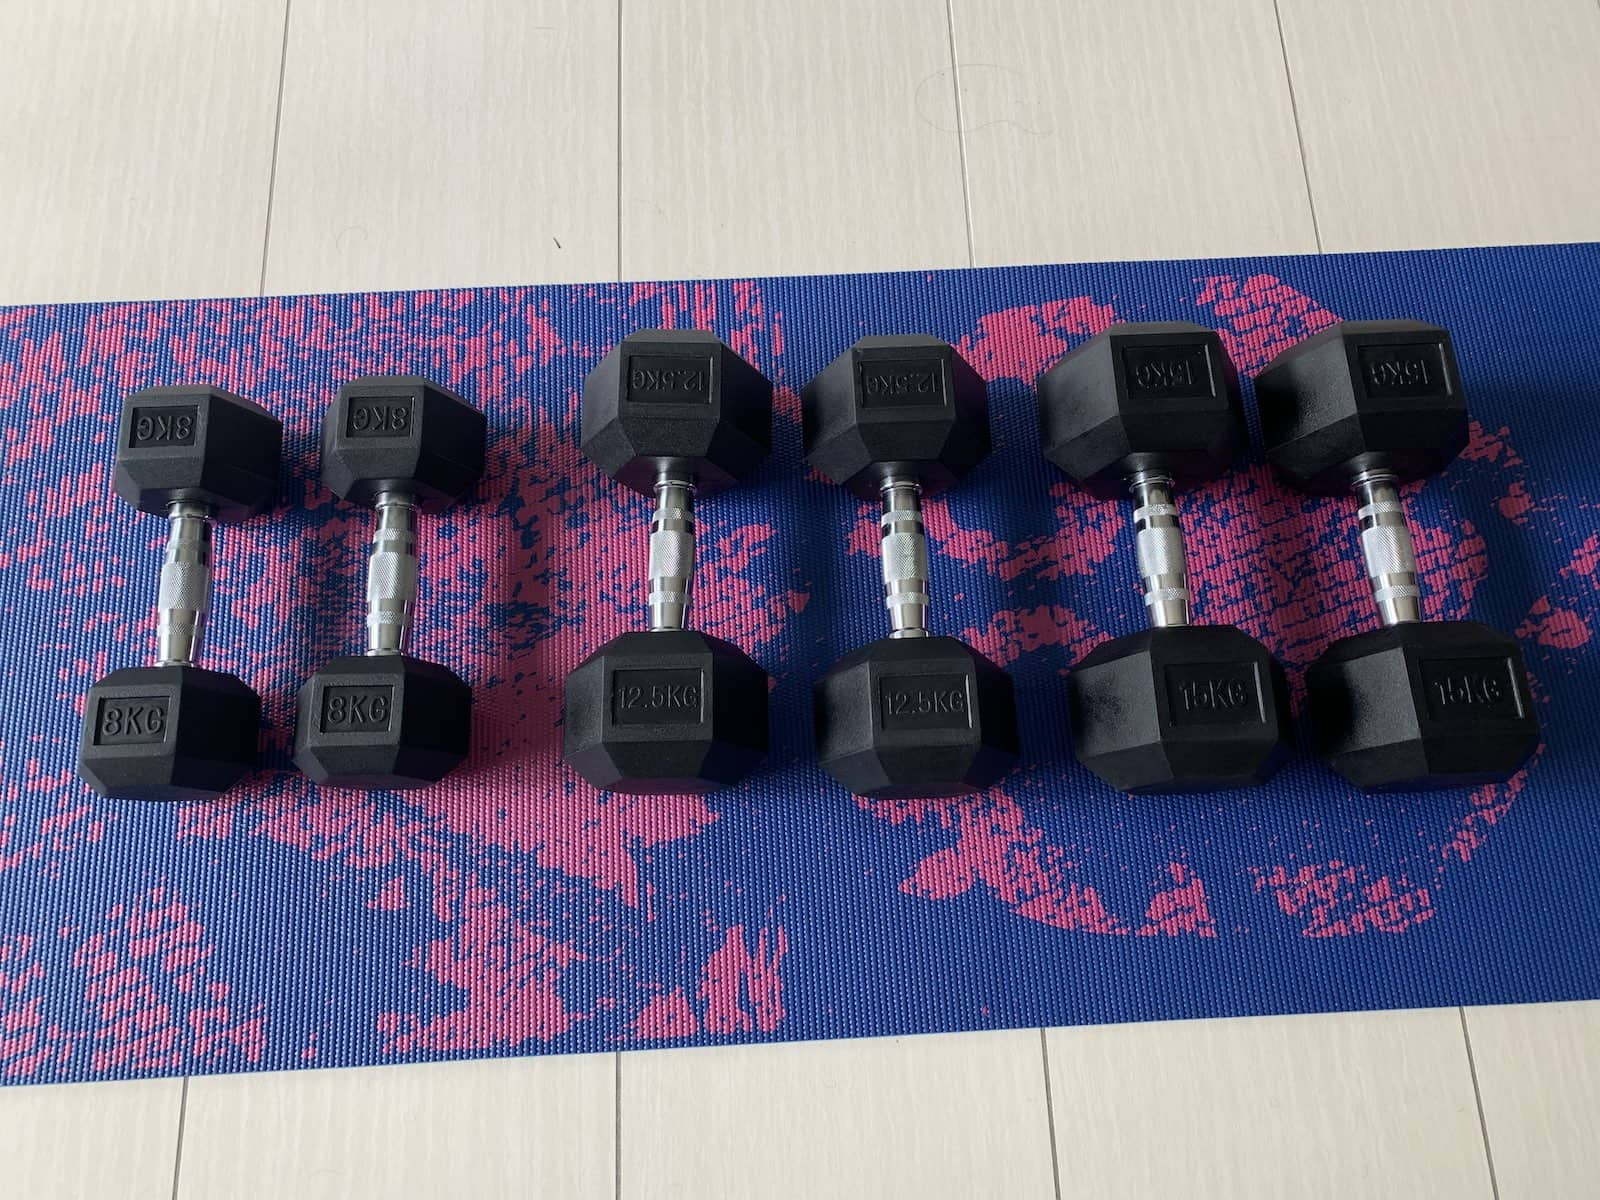 A dark blue yoga mat with a pink pattern. On the mat are three pairs of dumbbells of 8kg, 12.5kg and 15kg.